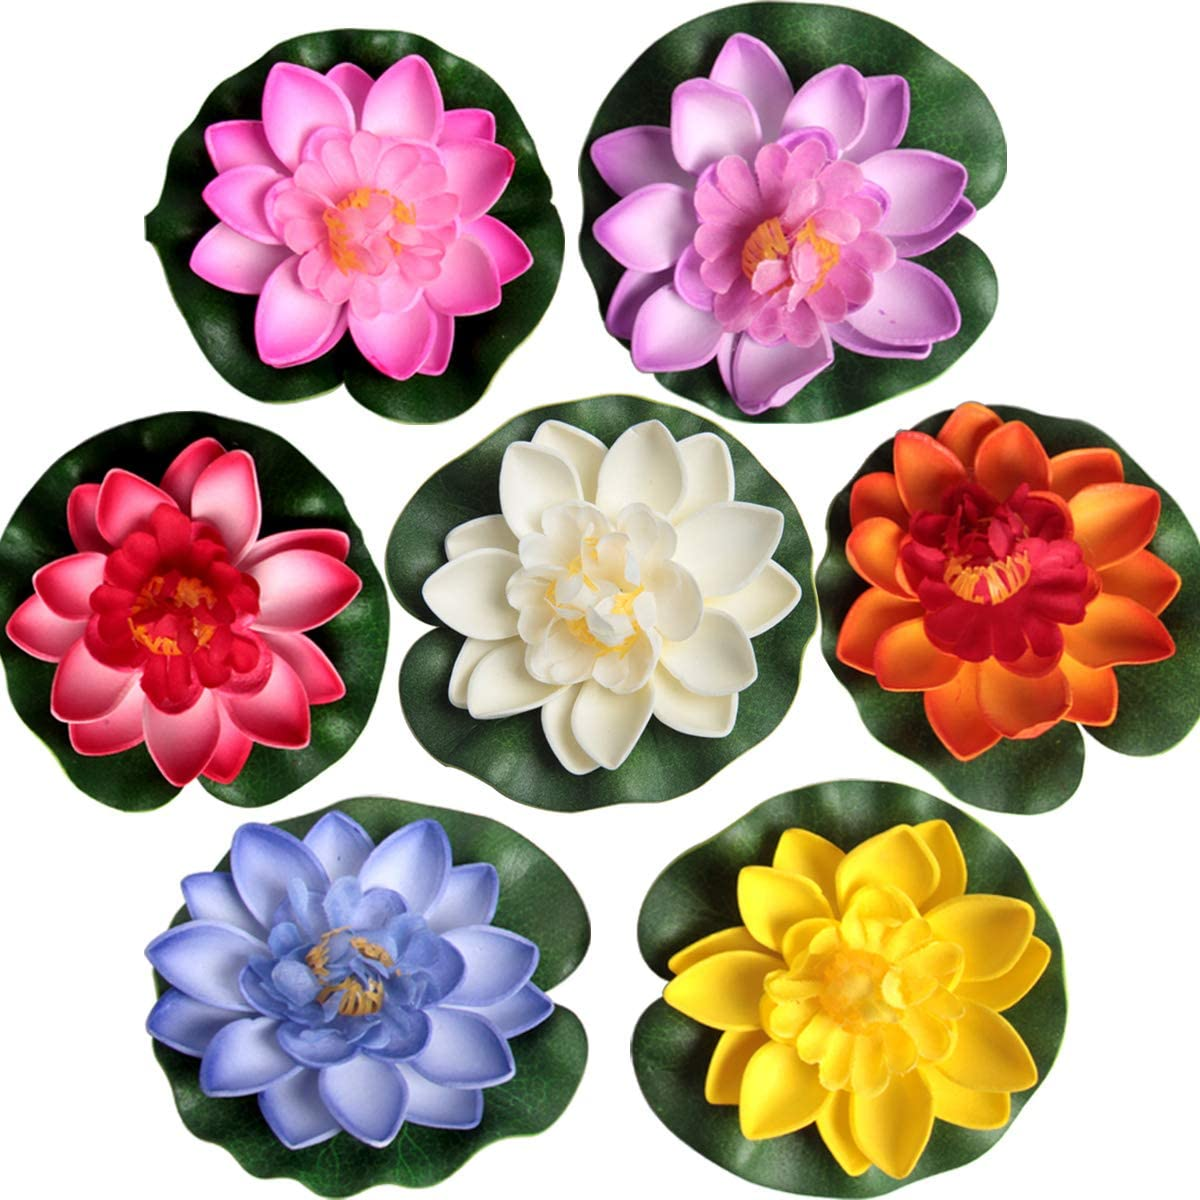 SBYURE 7 PCS Artificial Floating Lotus Flowers,Floating Pond Decor Realistic Foam Water Lily Lotus Flower,3.9 Inch (Yellow/Pink/Blue/Purple/Ivory/Orange/Red) for Home Garden Patio Pond